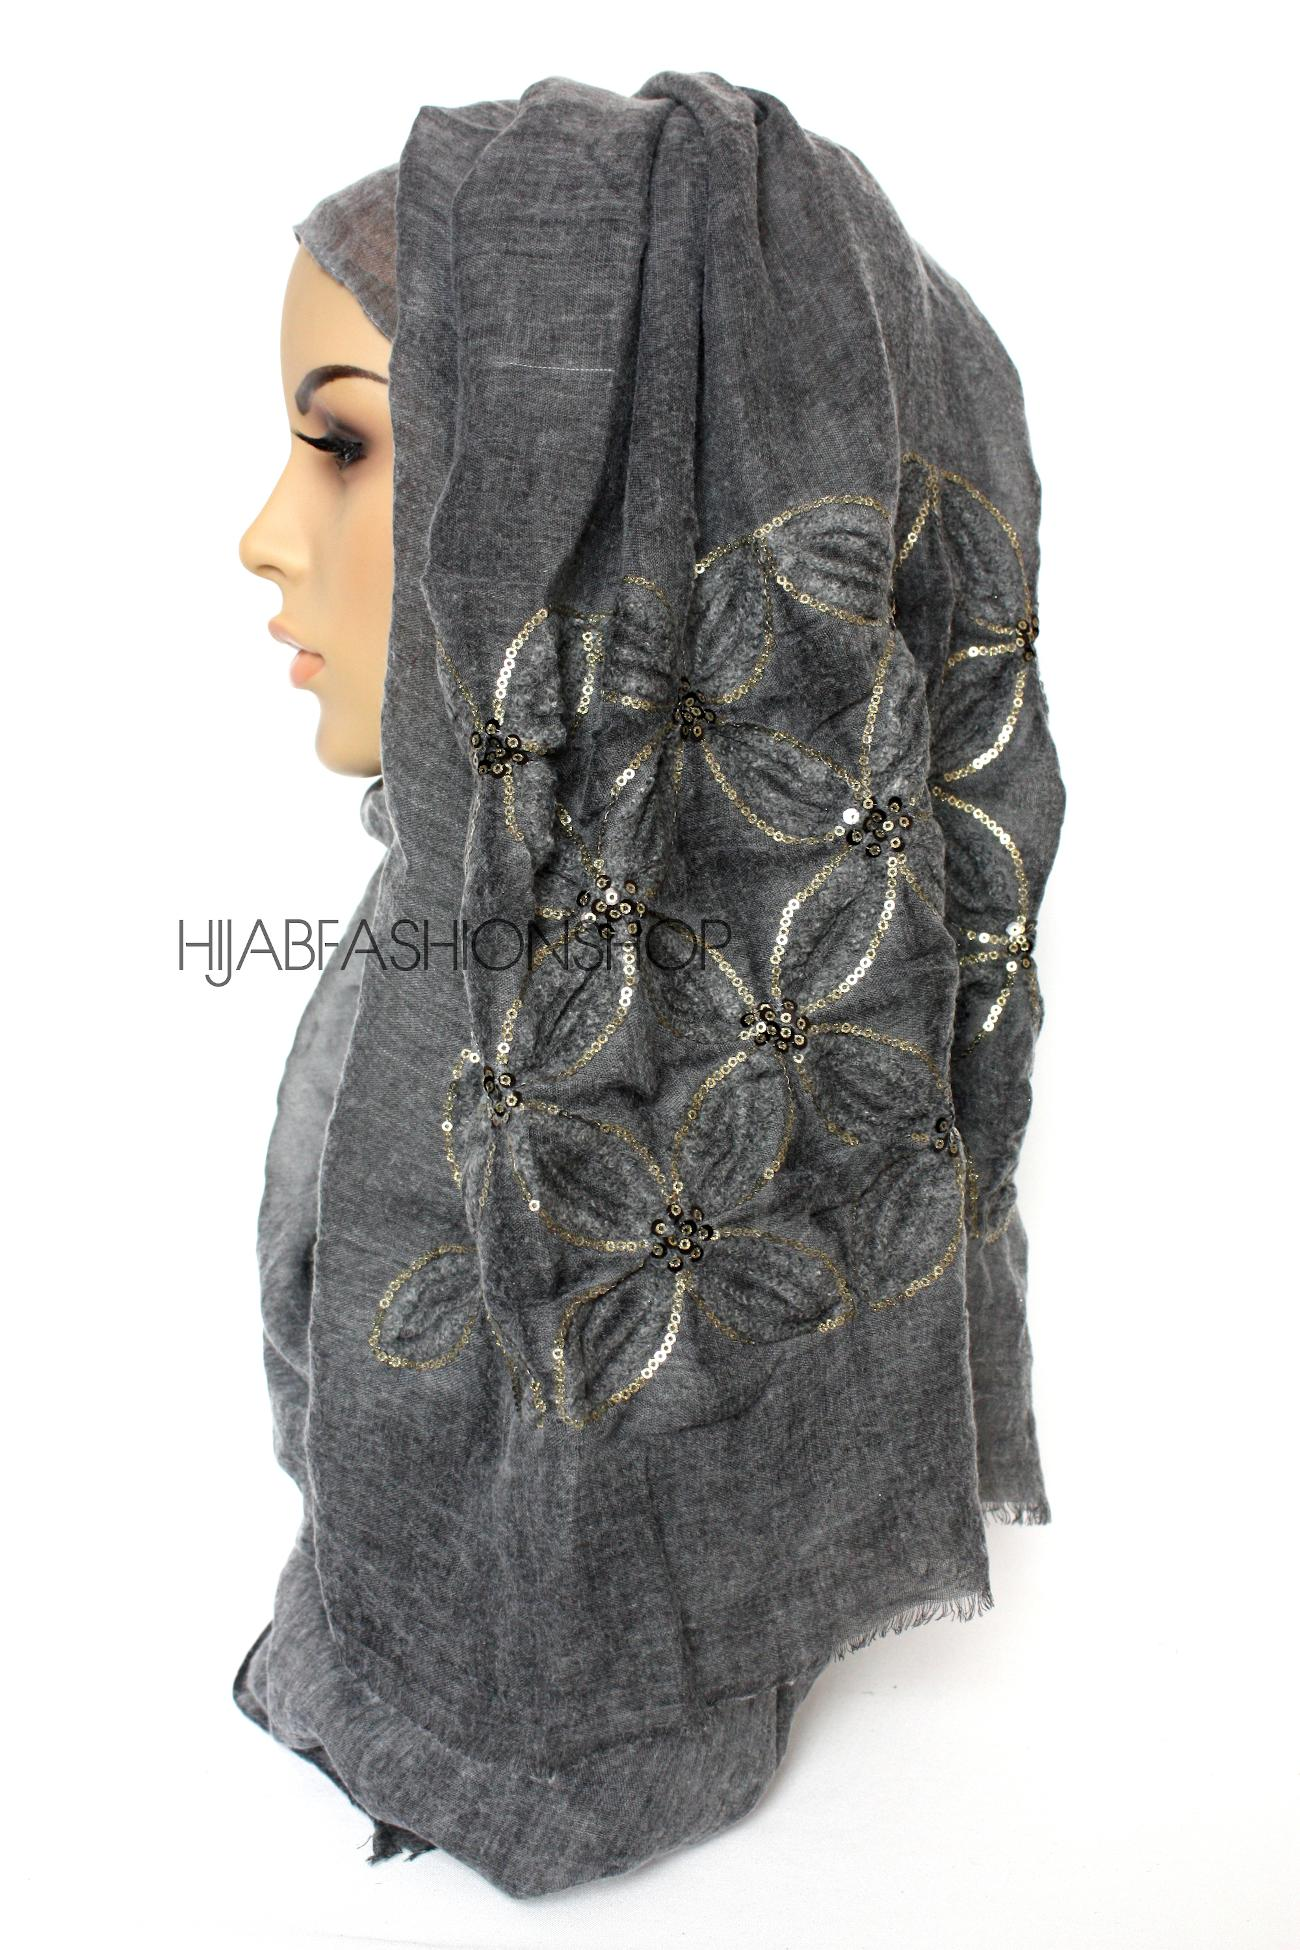 charcoal linen look hijab with lilies embroidery and sequins side view